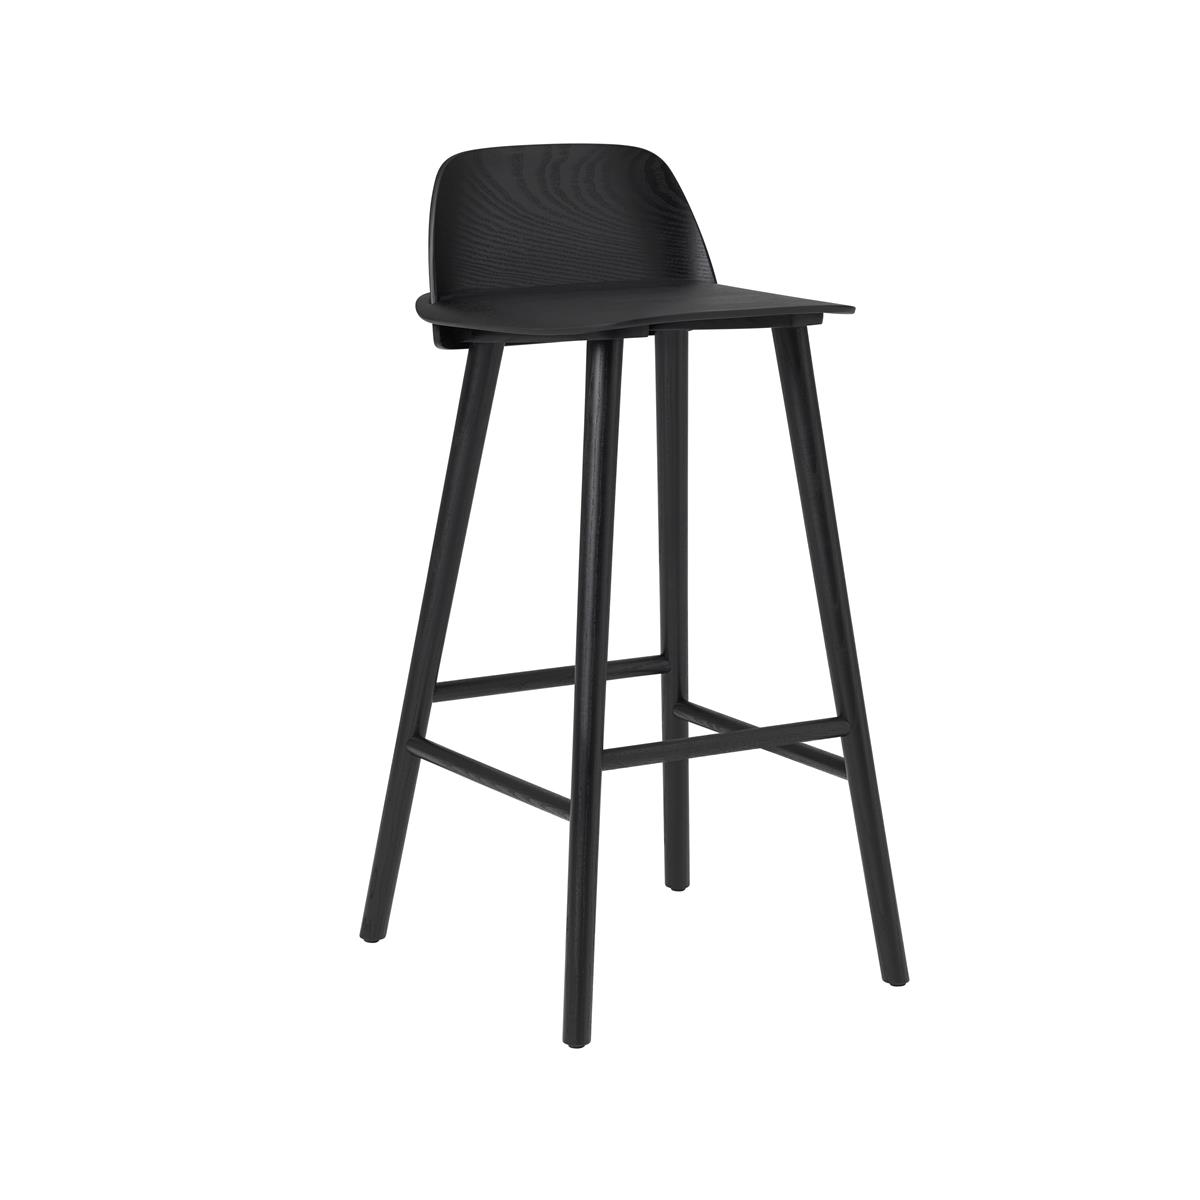 Nerd Bar Stool H75 - Black